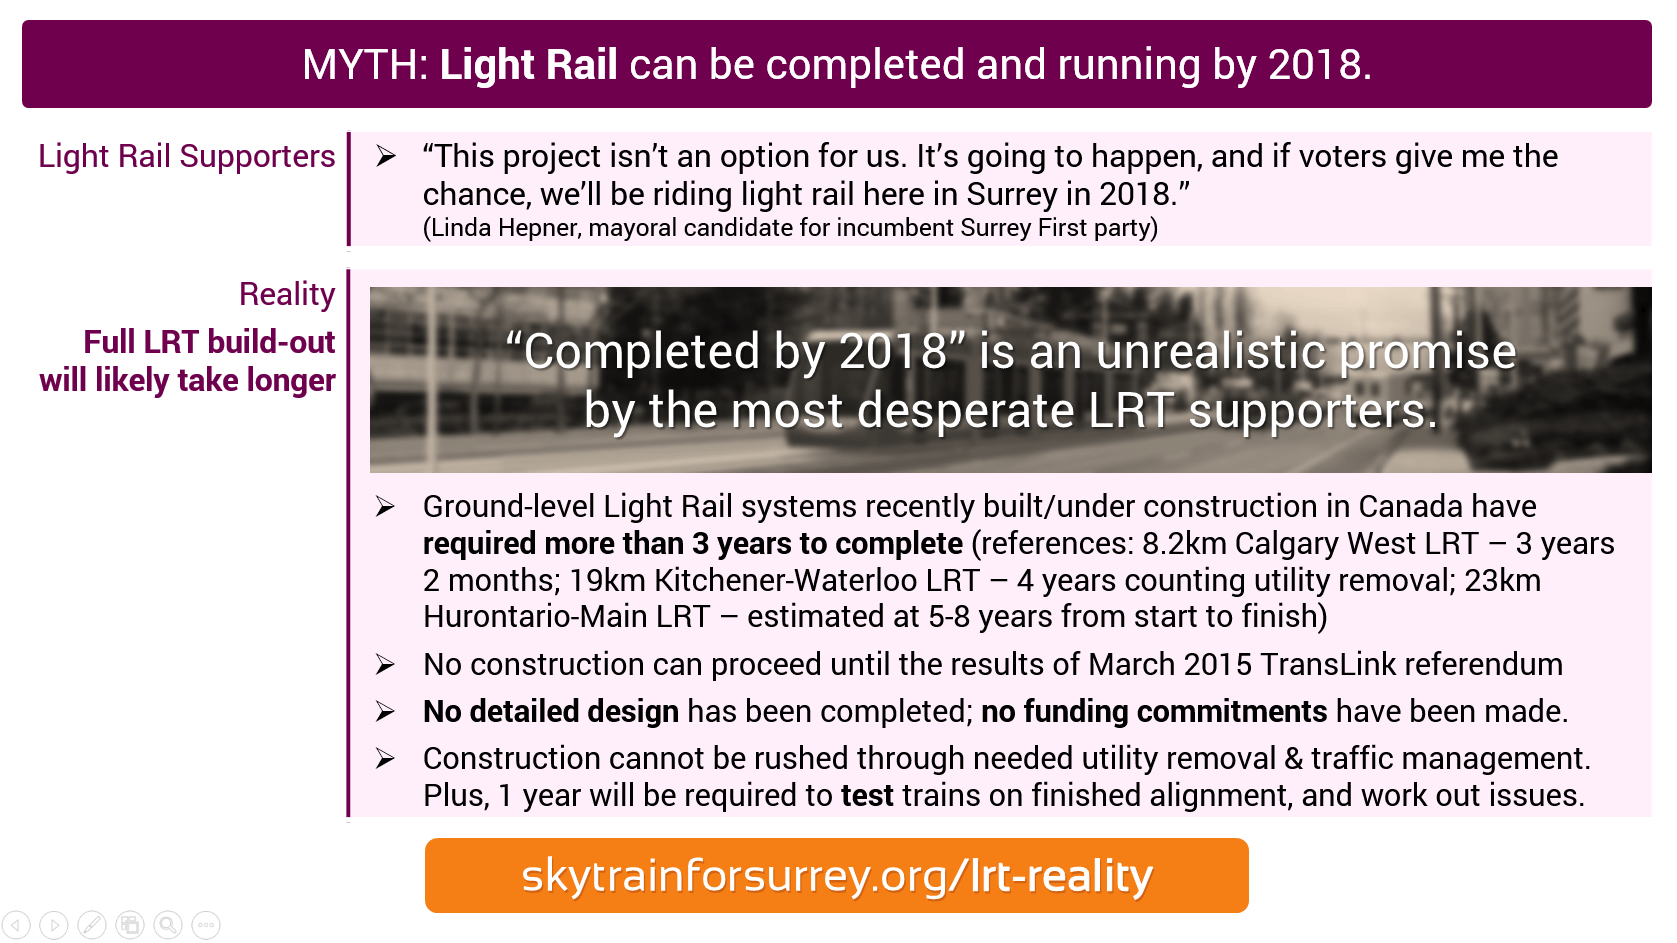 MYTH: Light Rail can be completed and running by 2018; REALITY: Full LRT build-out will likely take longer.